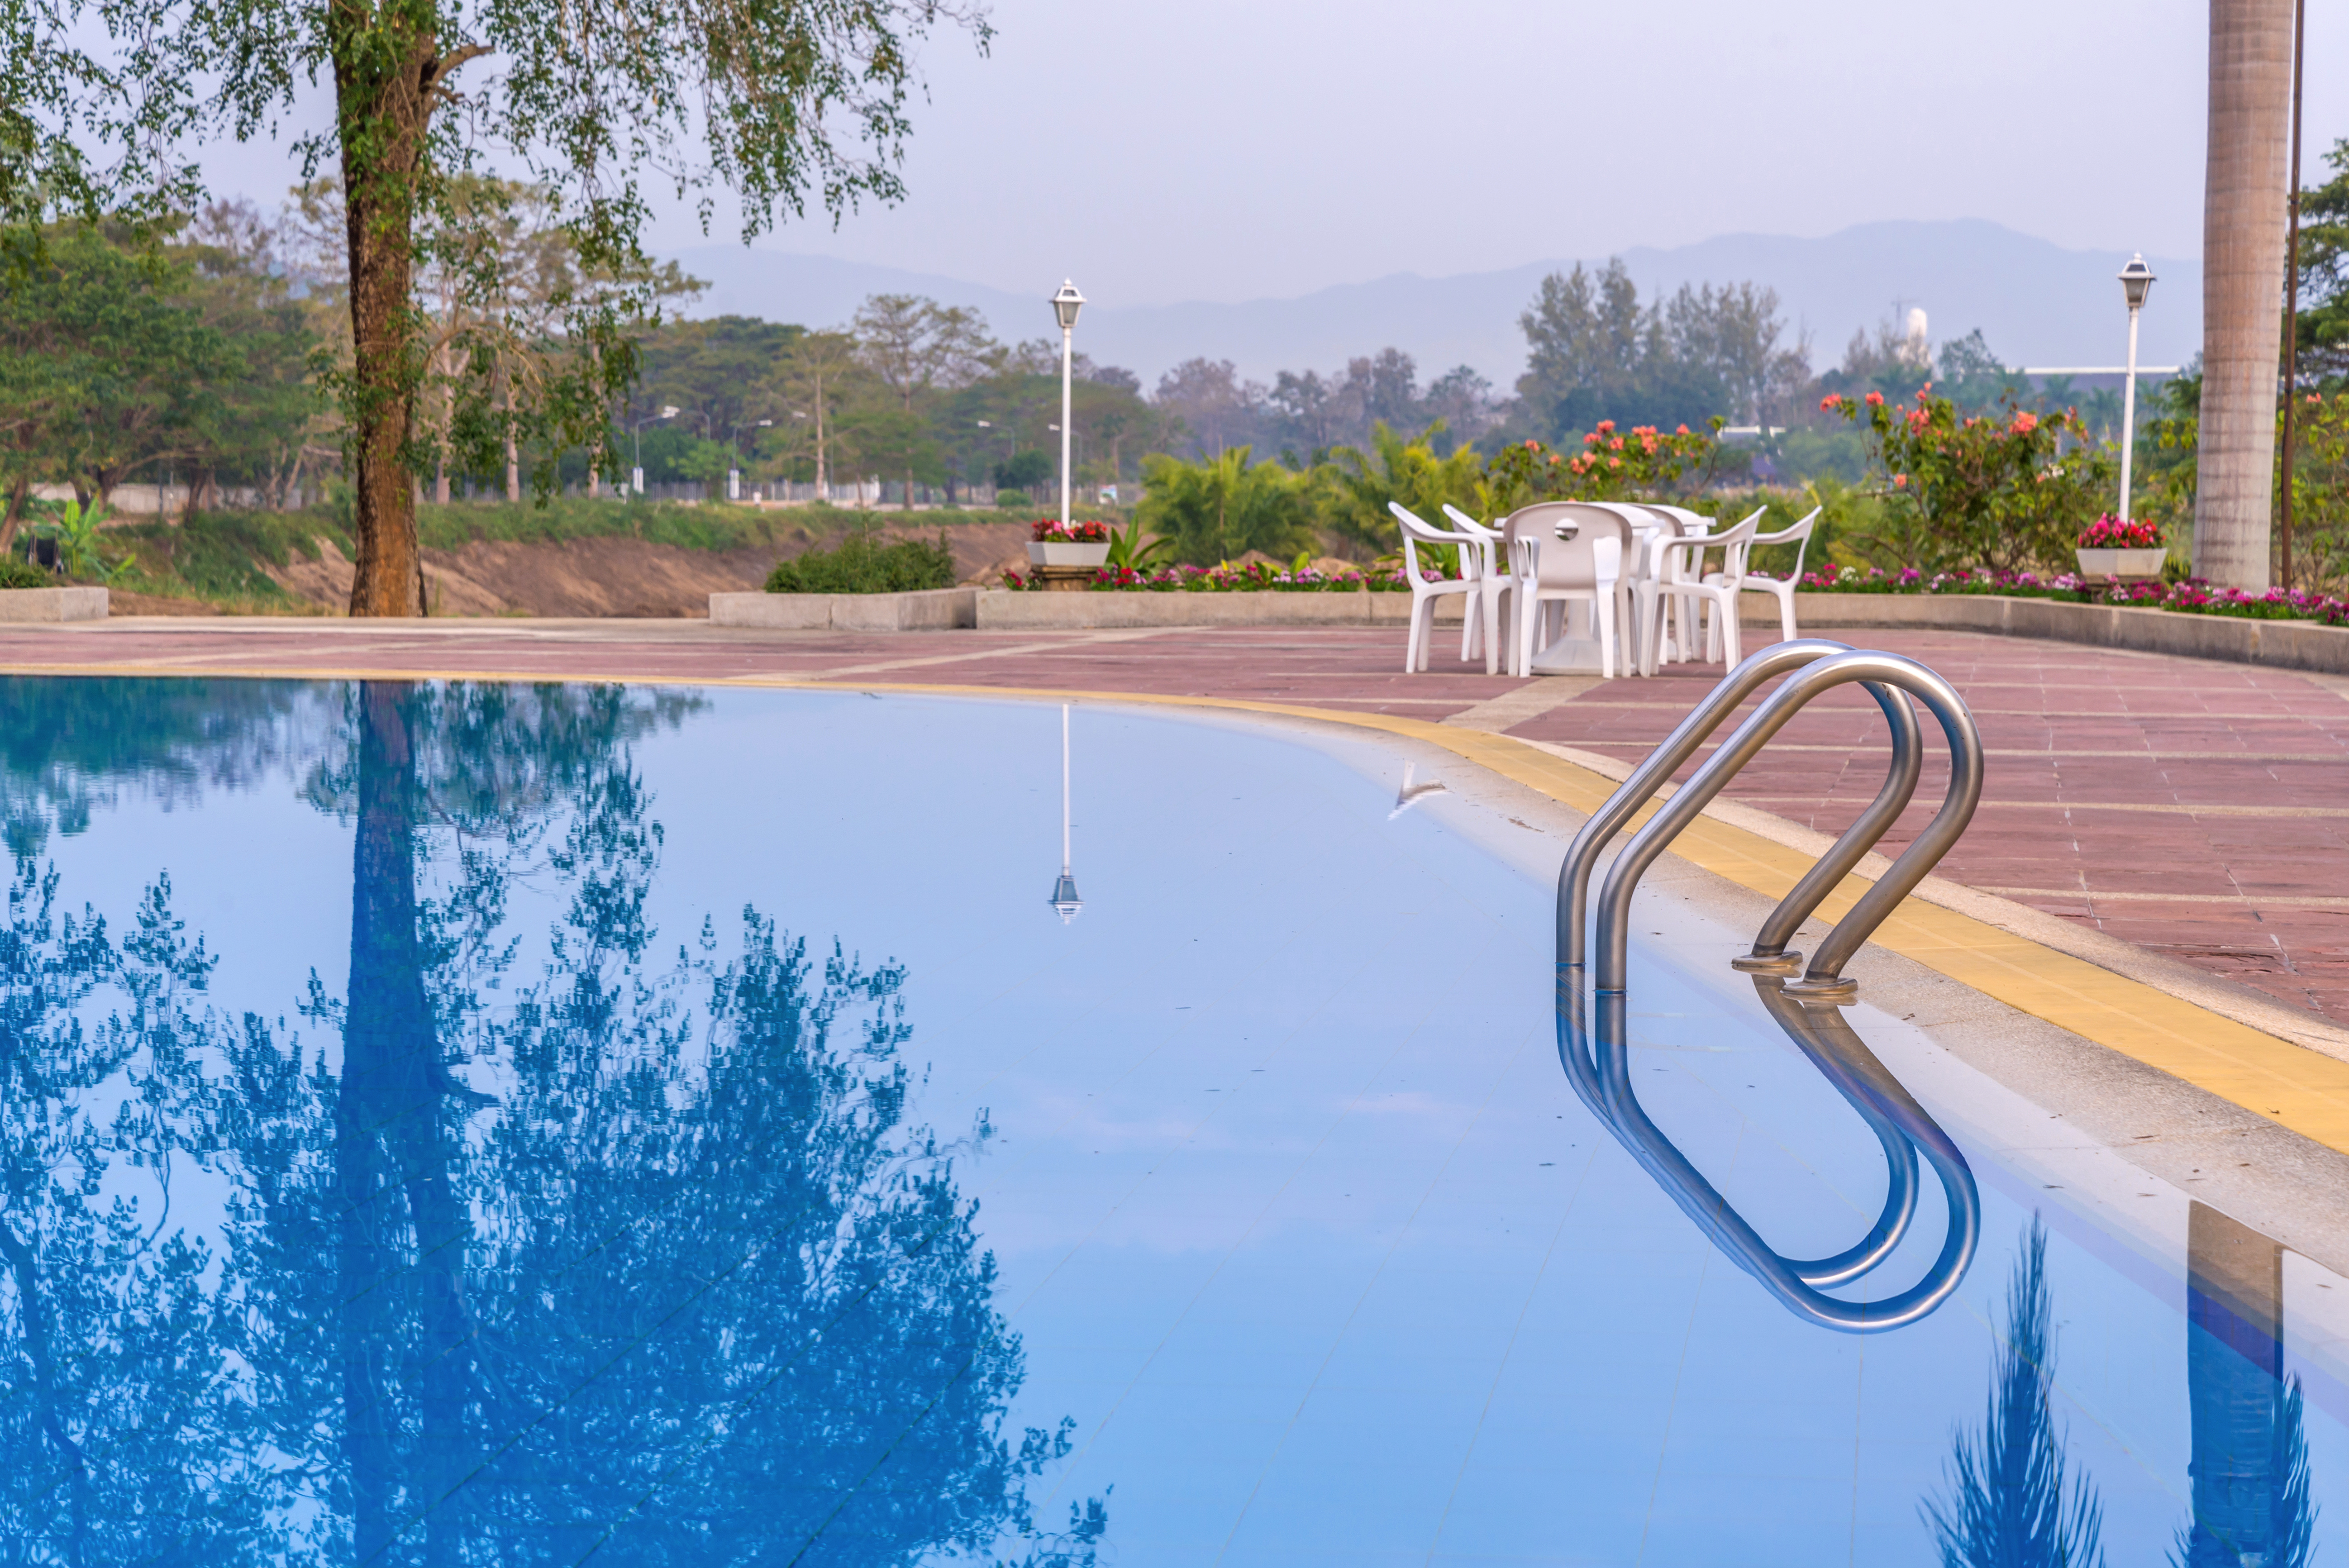 Pool maintenance tips to pass your next inspection coast for Pool maintenance guide